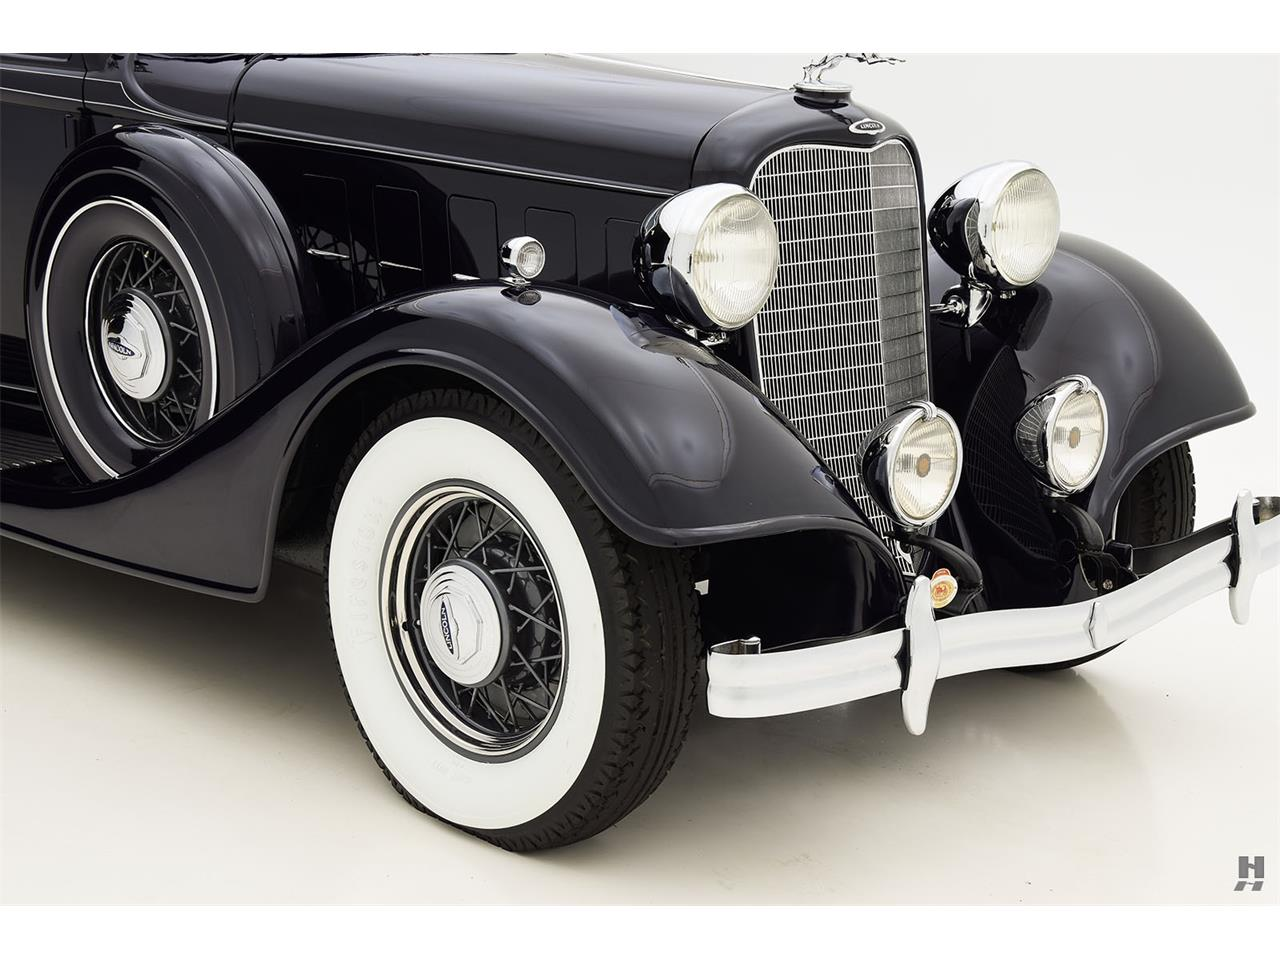 Large Picture of 1934 Antique located in Missouri - $129,500.00 Offered by Hyman Ltd. Classic Cars - LBT2